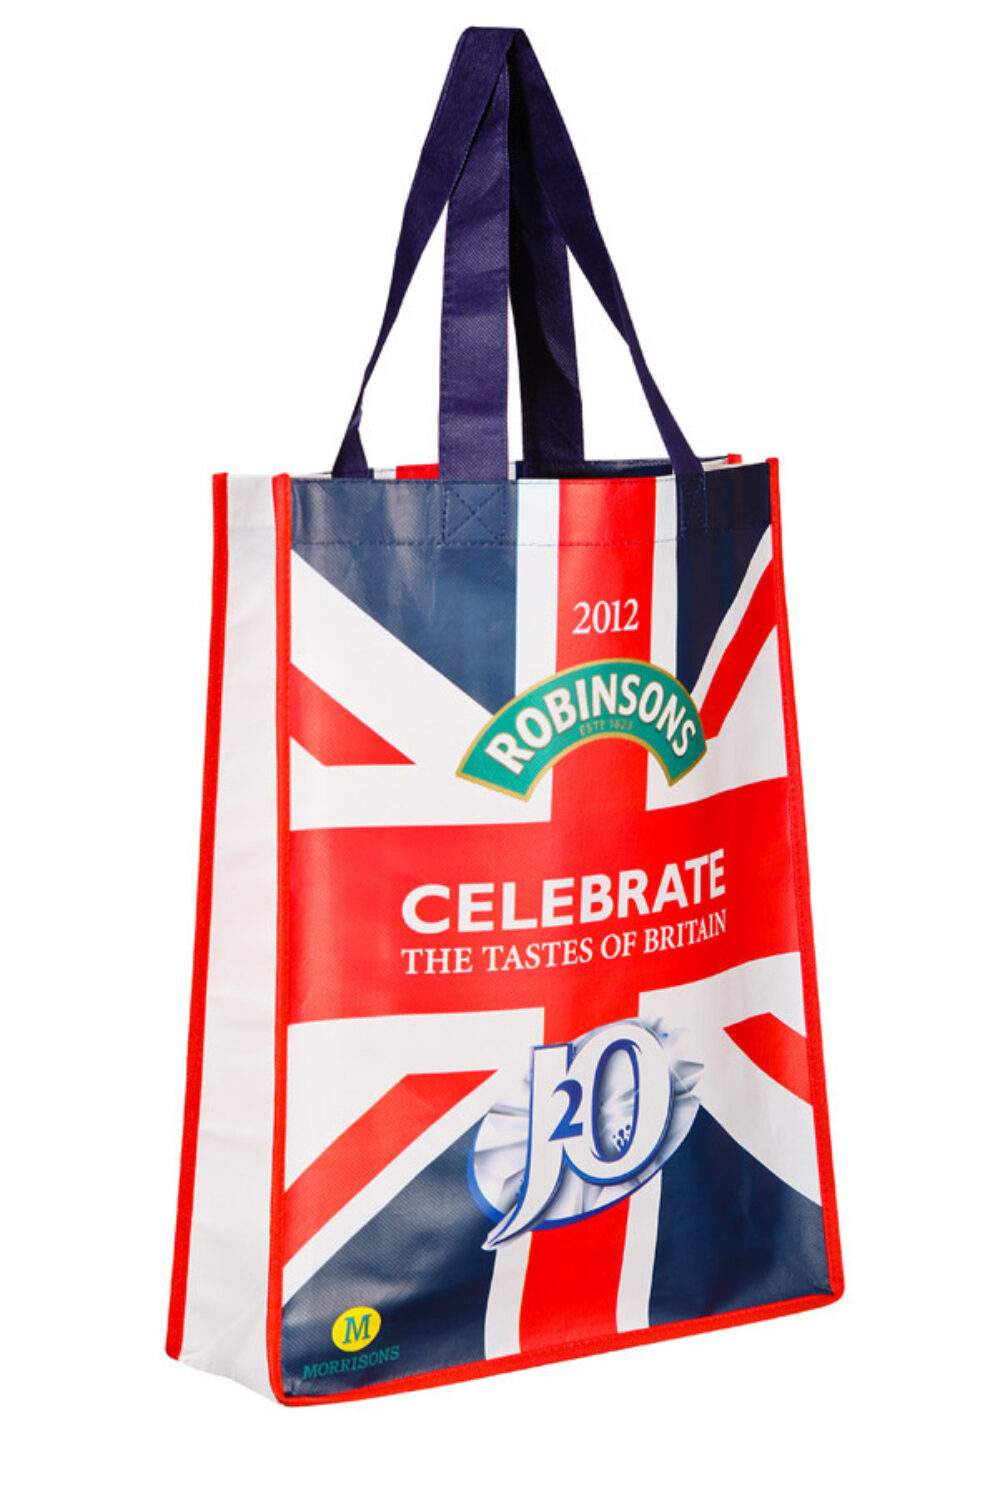 Let's get physical – promotional gifts win the race to attract customers